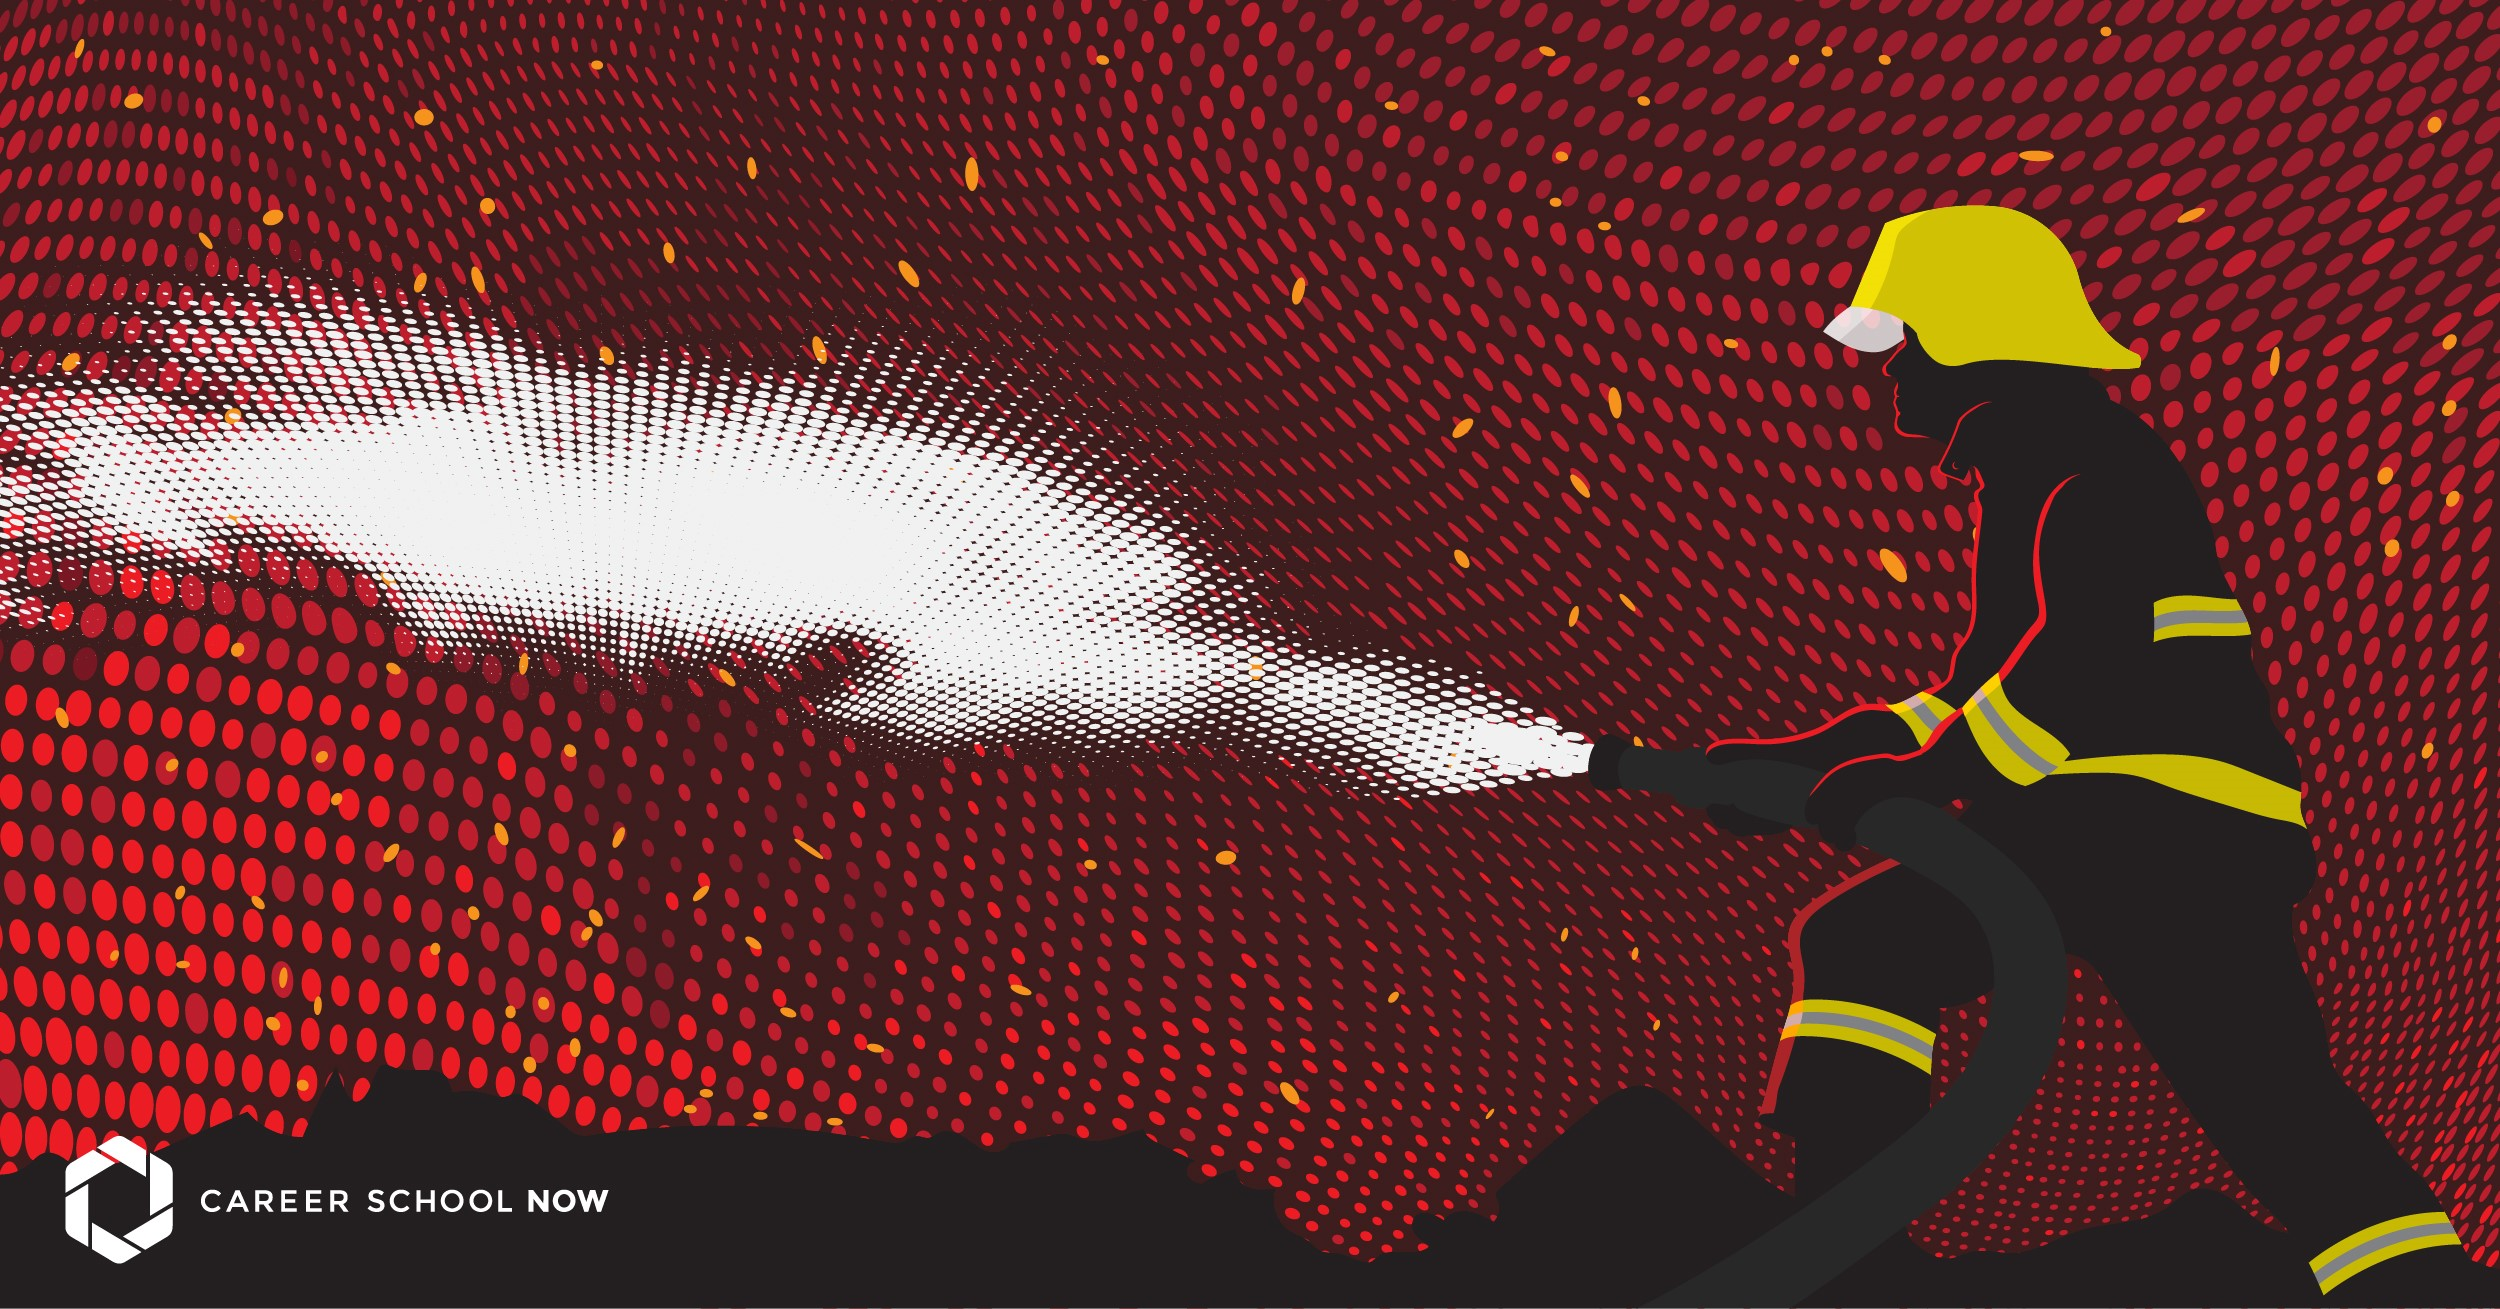 Become a Firefighter - Learn How Here